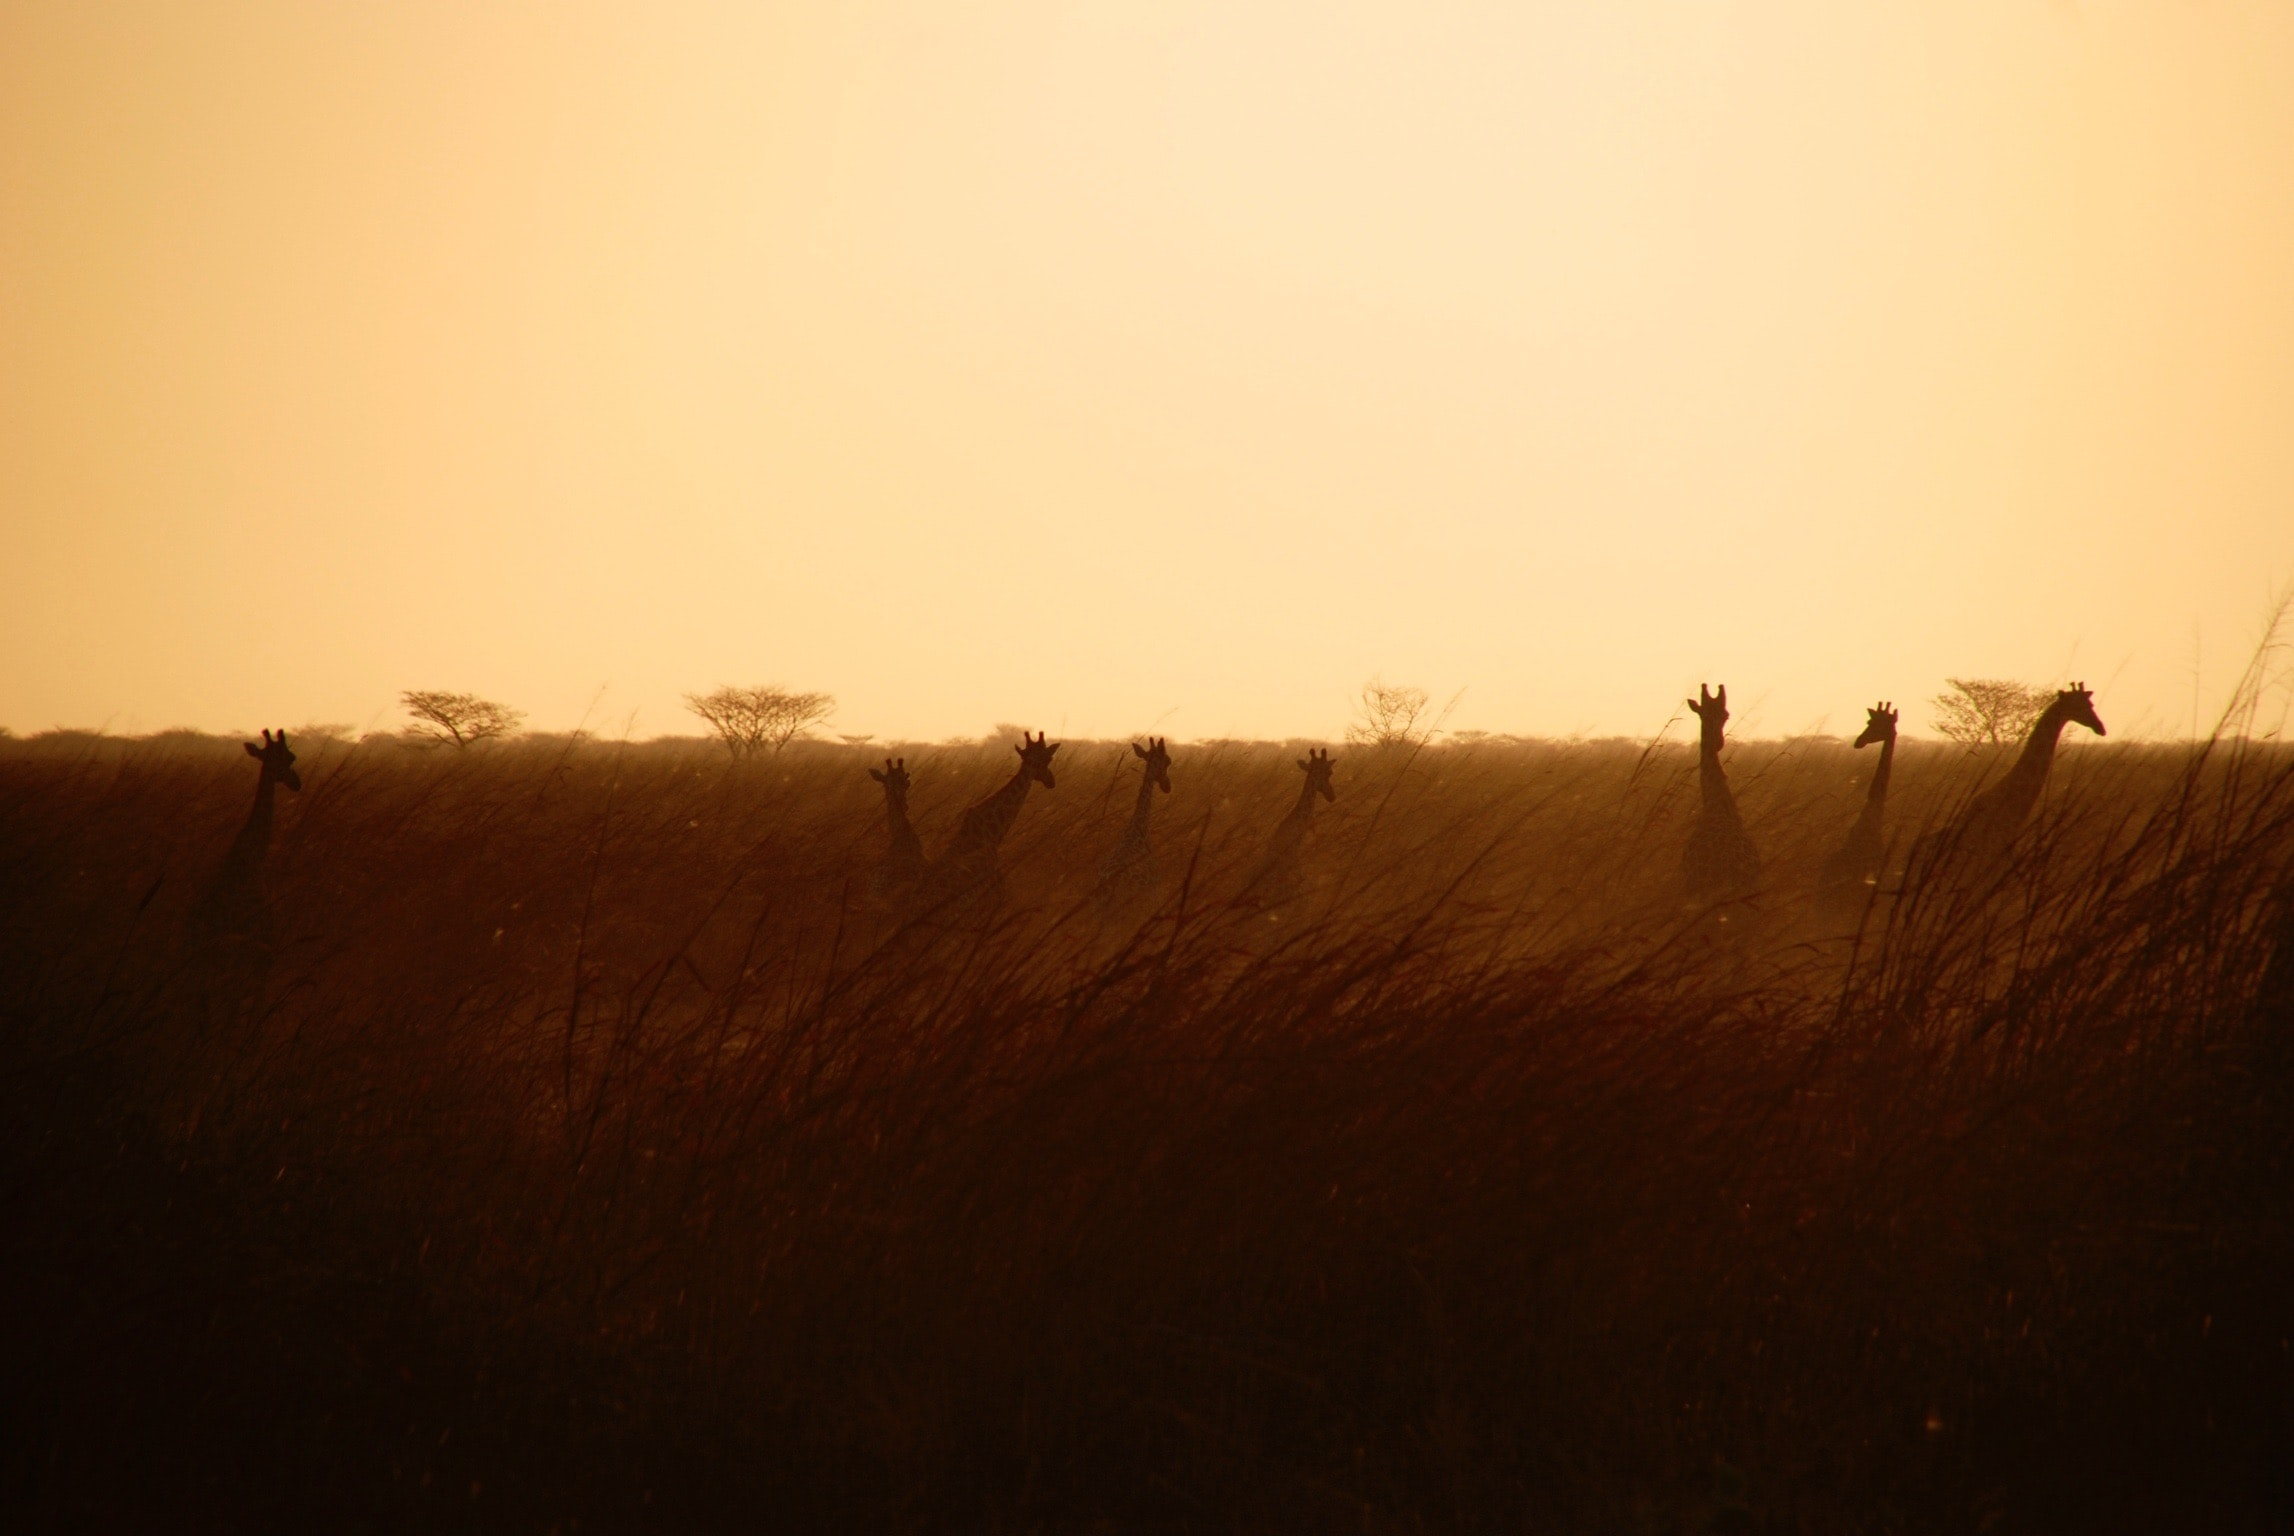 Silhouettes of giraffes in tall grass during sunset